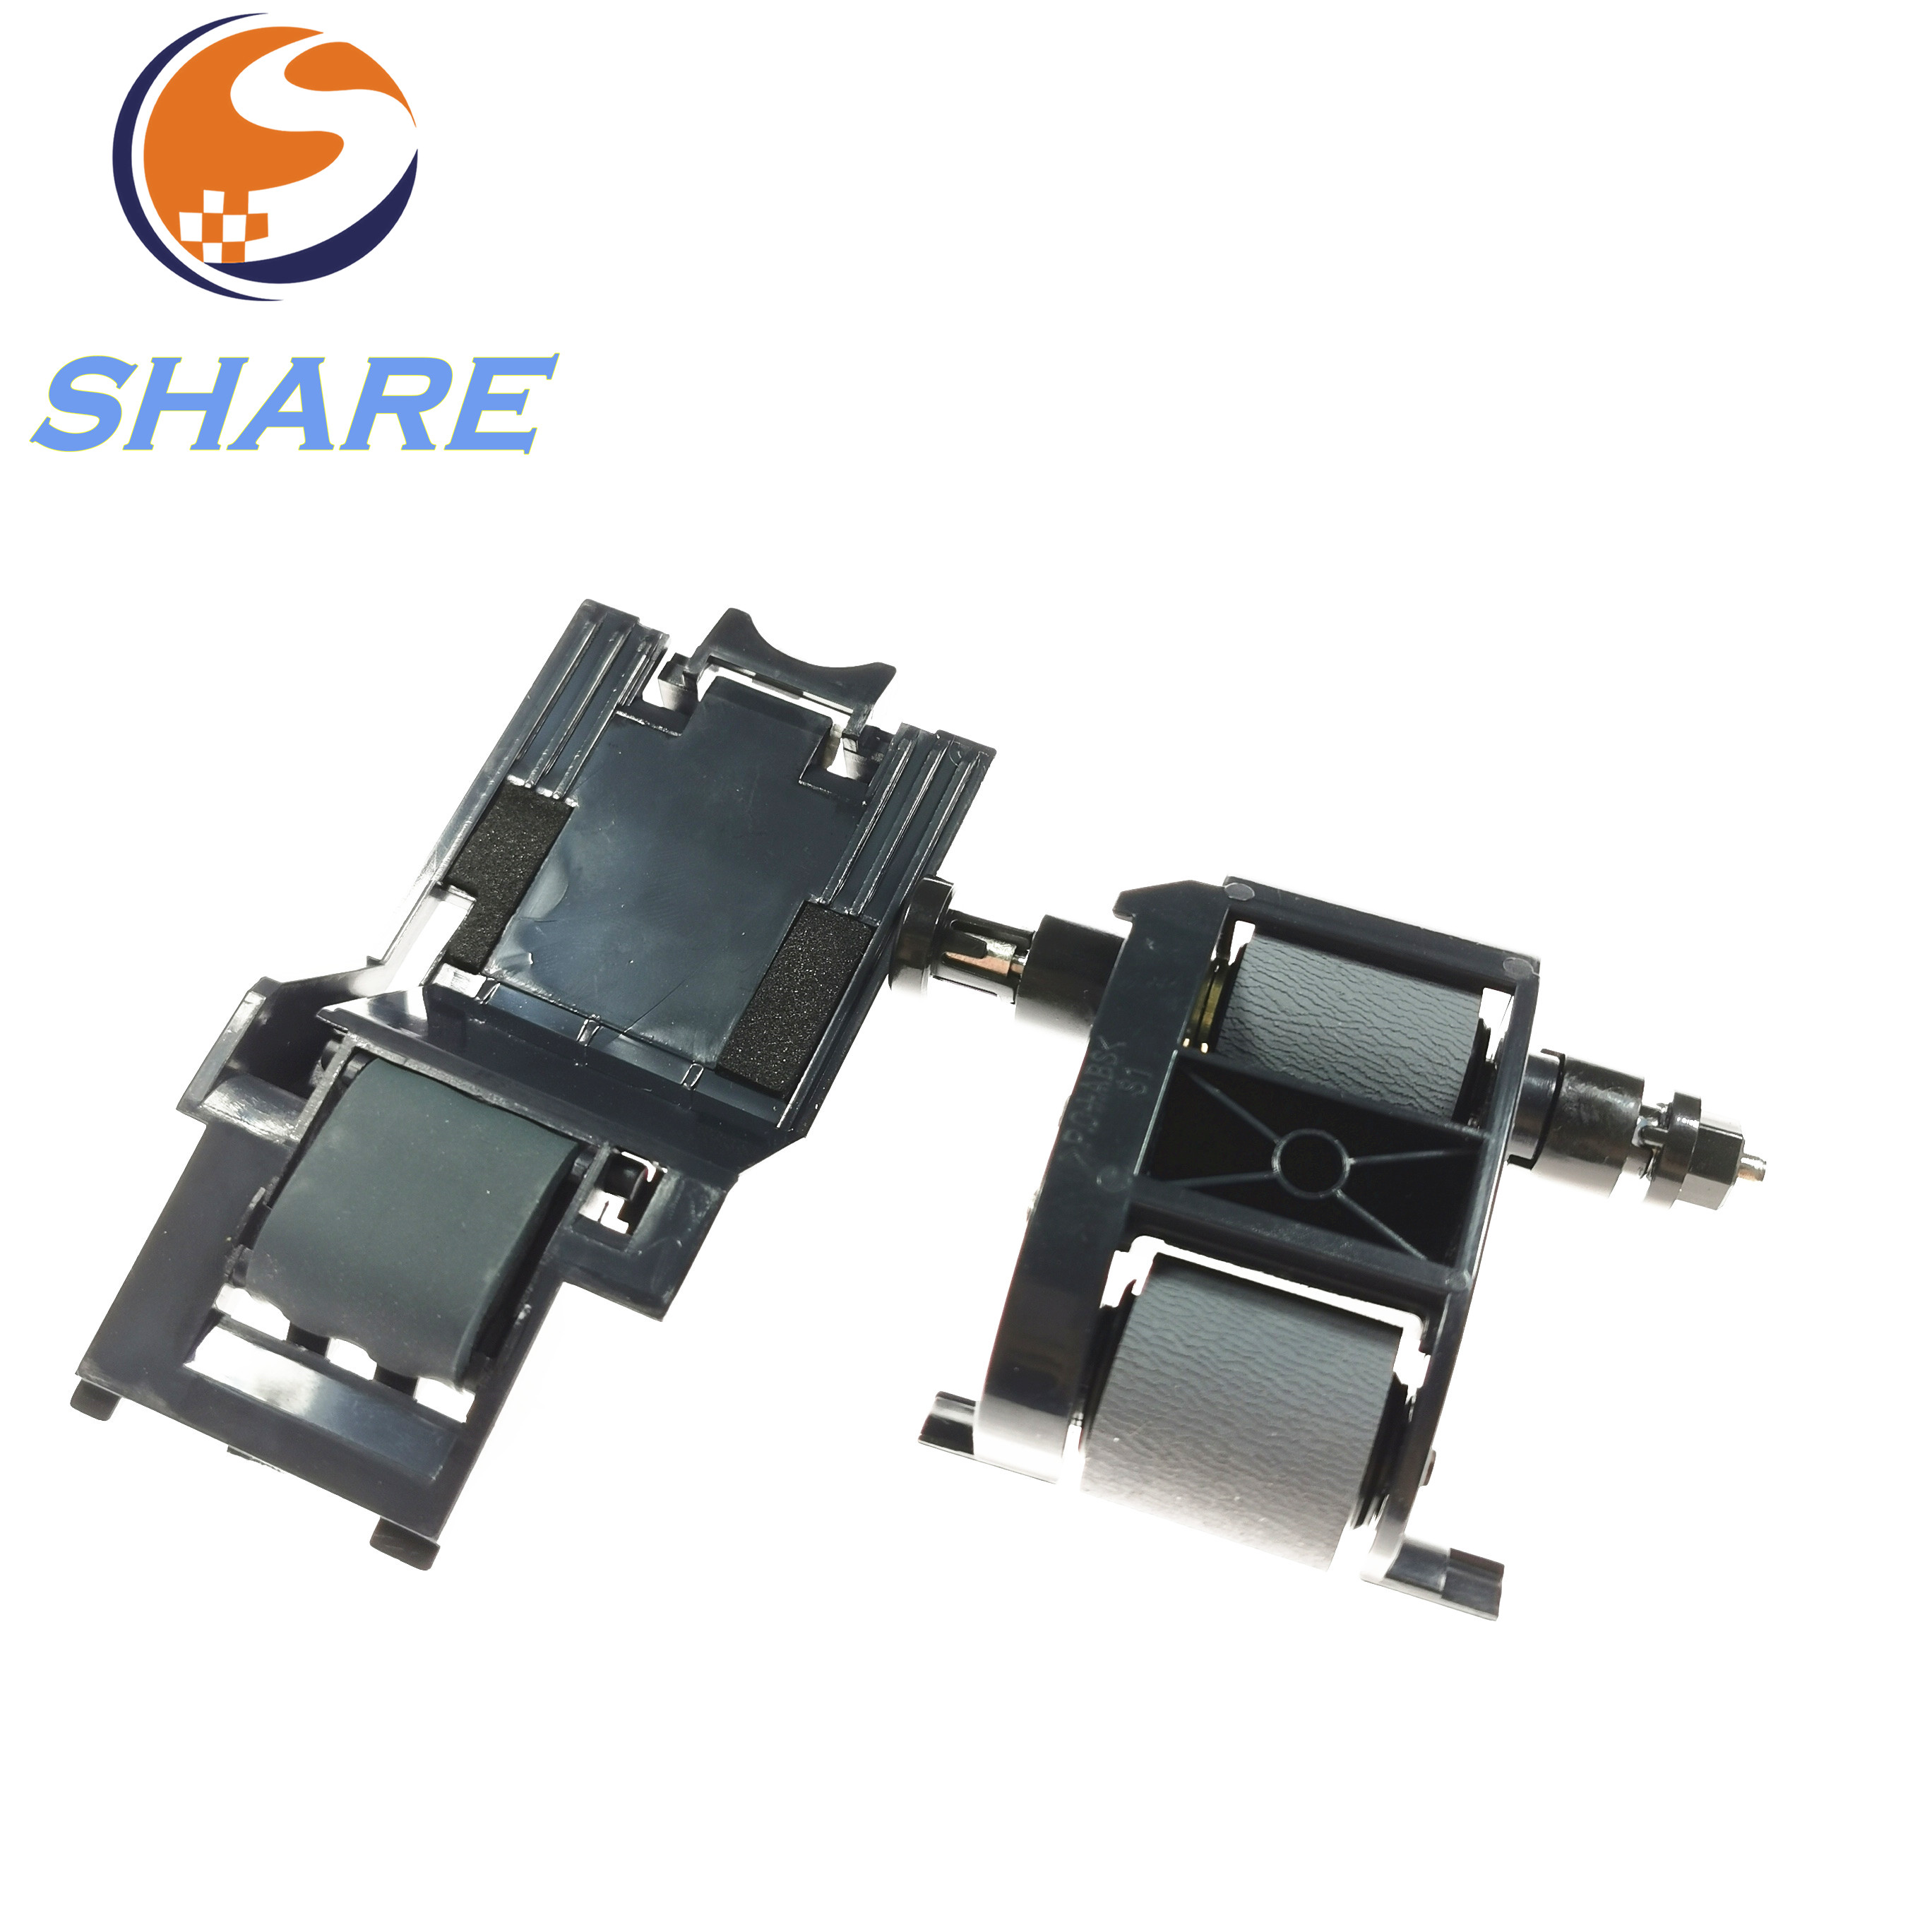 SHARE New L2718A ADF Roller Kit For HP M575 M680 M630 M525 M725 651 M775 L2725-60002 ScanJet 7500 Series